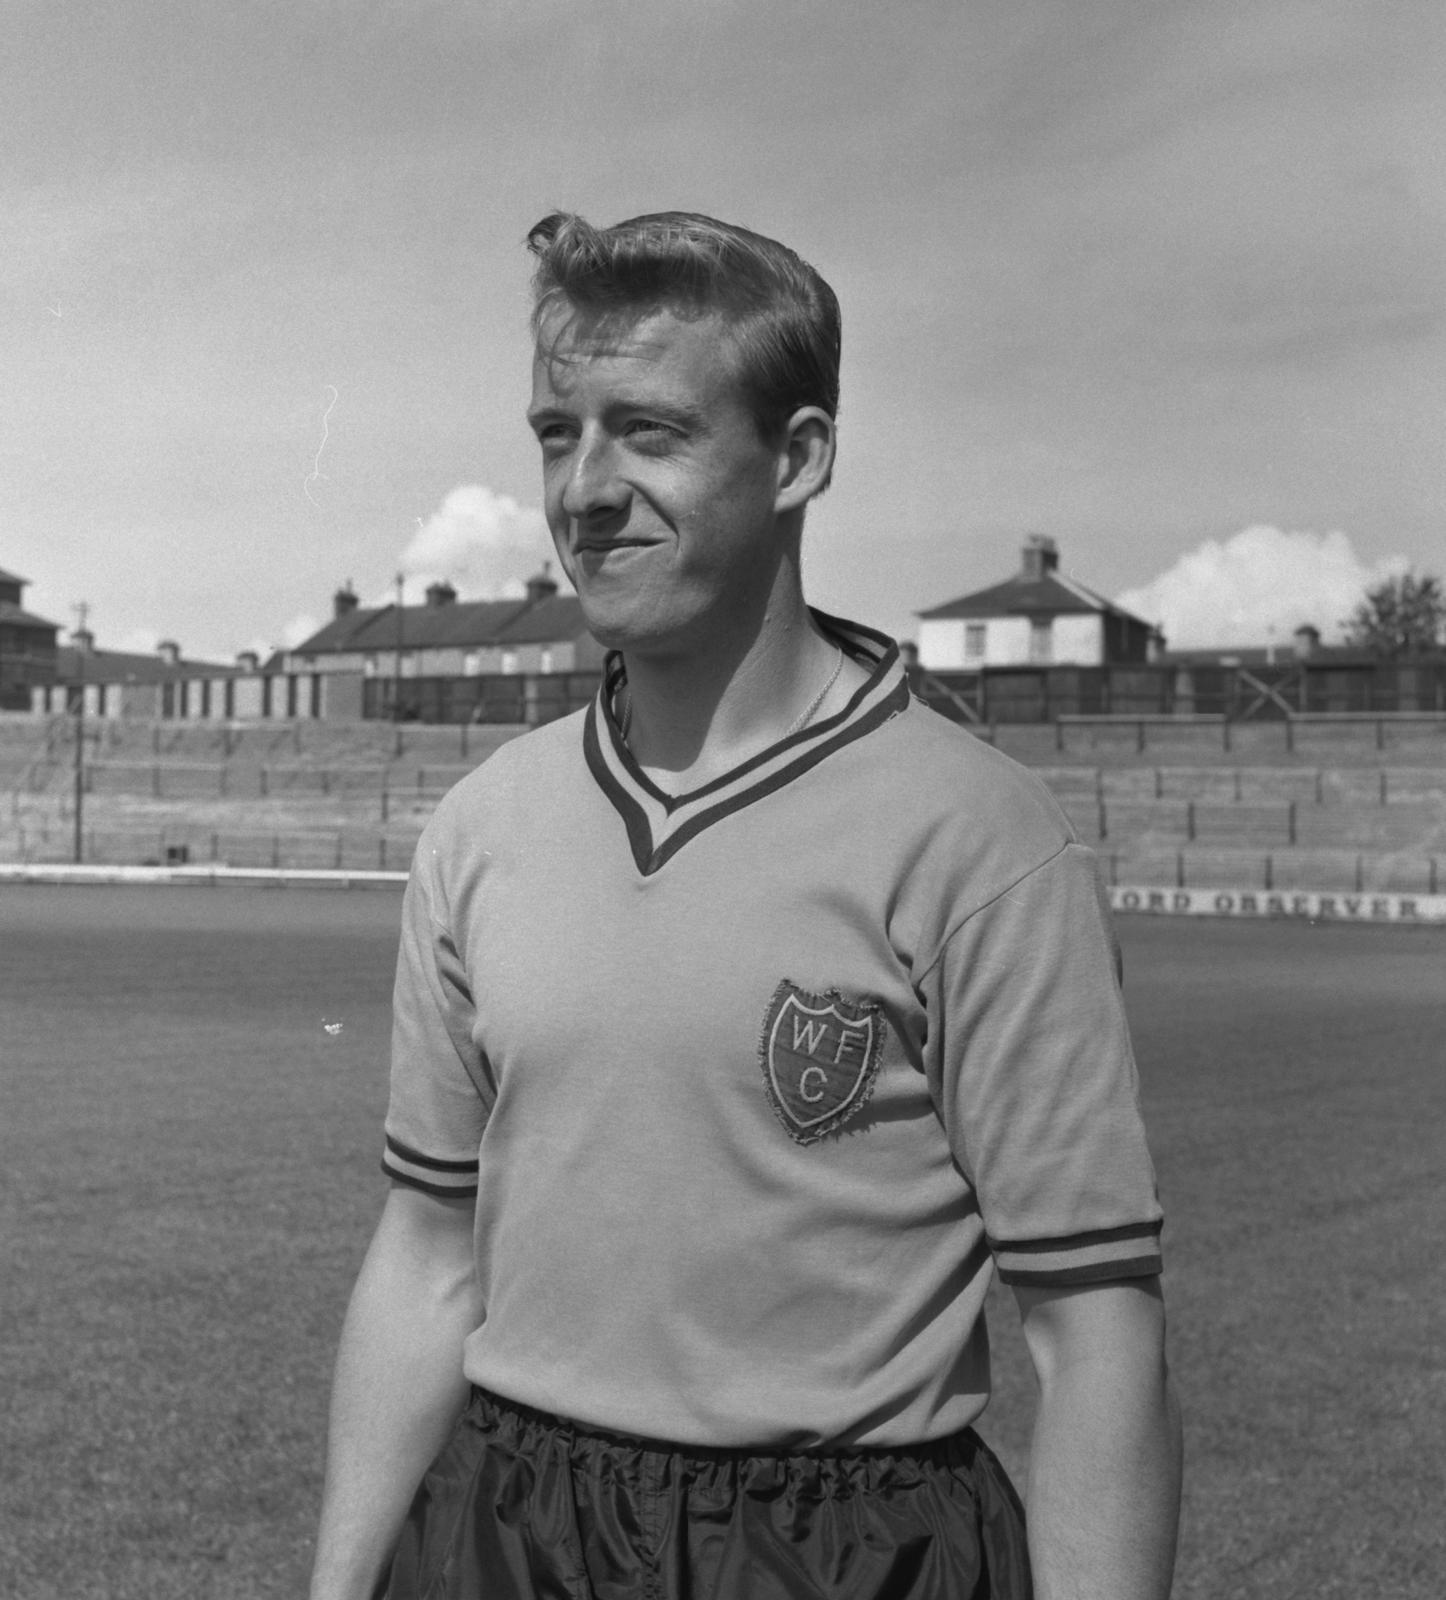 Obituary: Former Watford player and Luton Town FA Cup finalist Tony Gregory dies